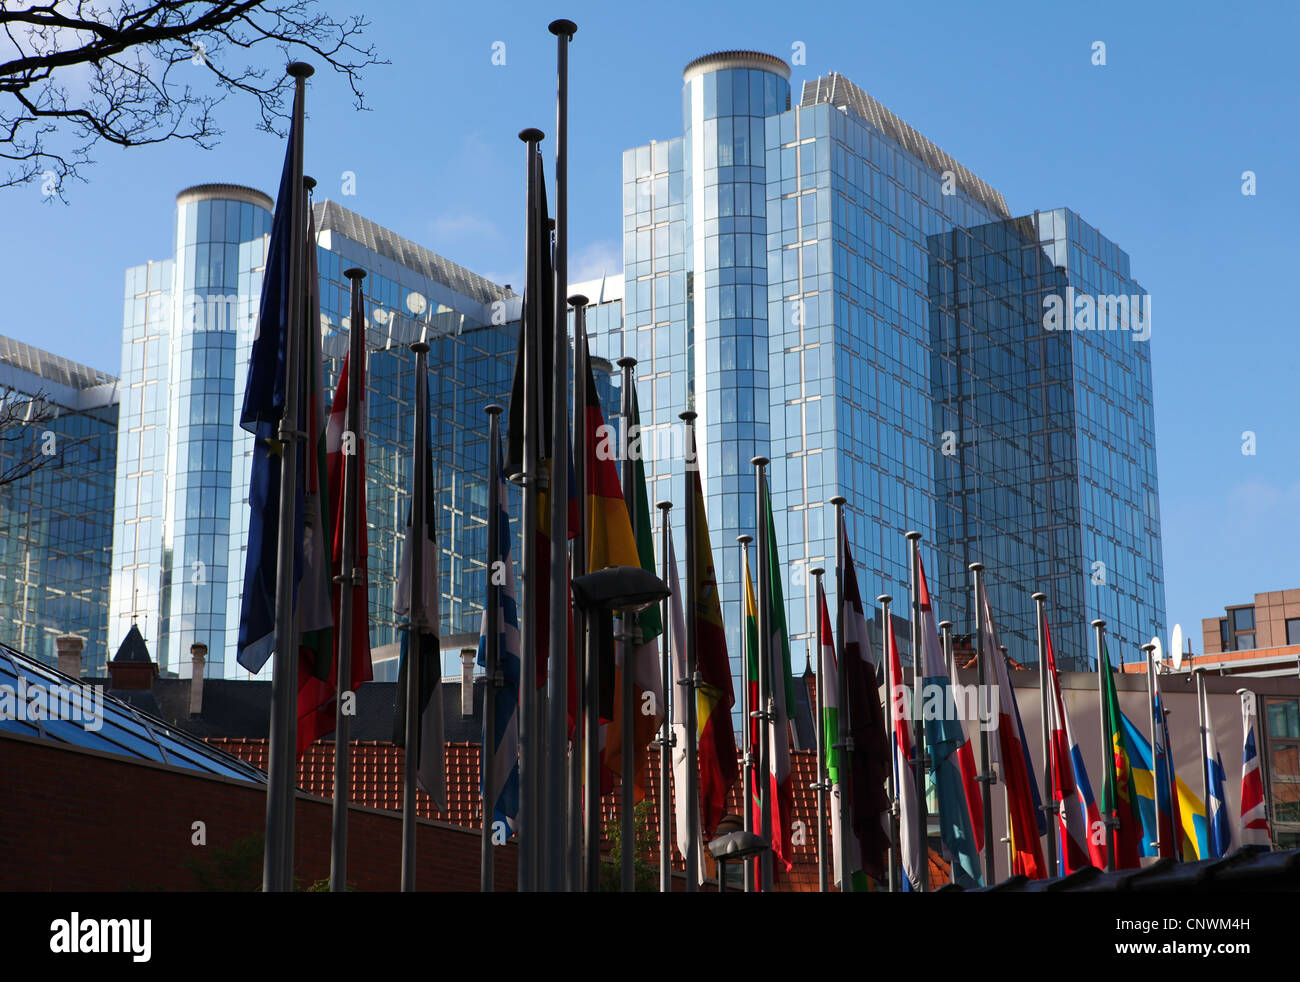 Flags of the member states of the European Union in front of the European Parliament building in Brussels, Belgium. - Stock Image